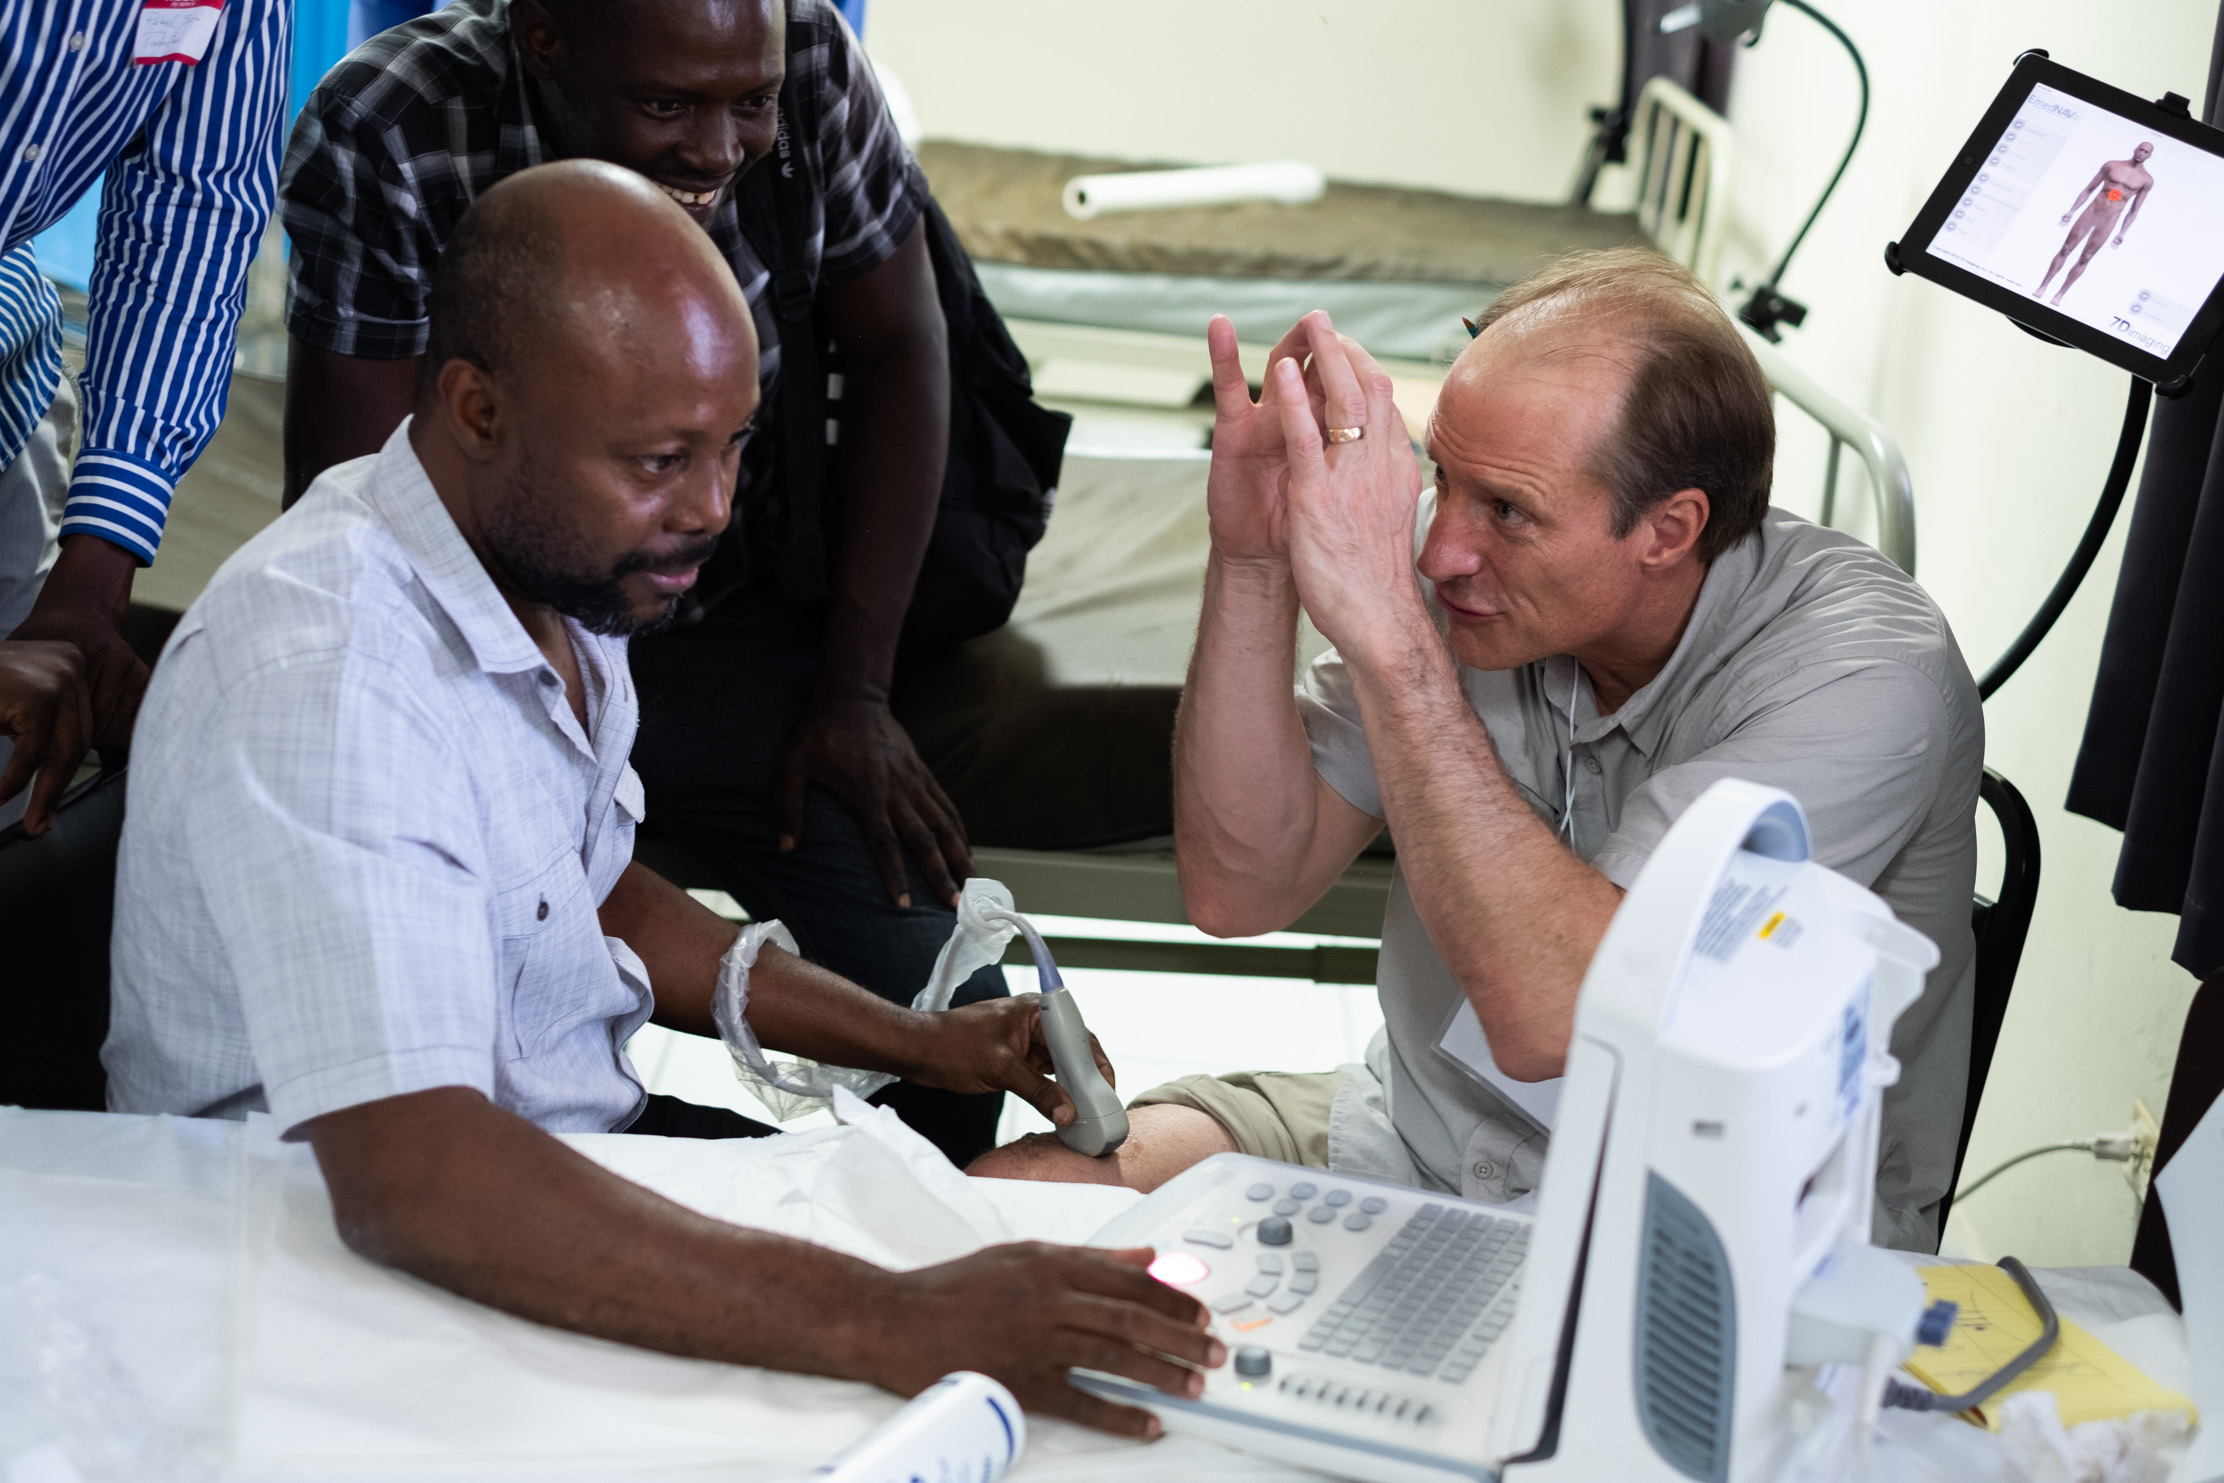 During a hands-on session at Grace Children's Hospital in Port-au-Prince, Haiti, Dr. Gronseth volunteers his own leg to show Dr. Rony Derius how ultrasound 'sees' inside the body.